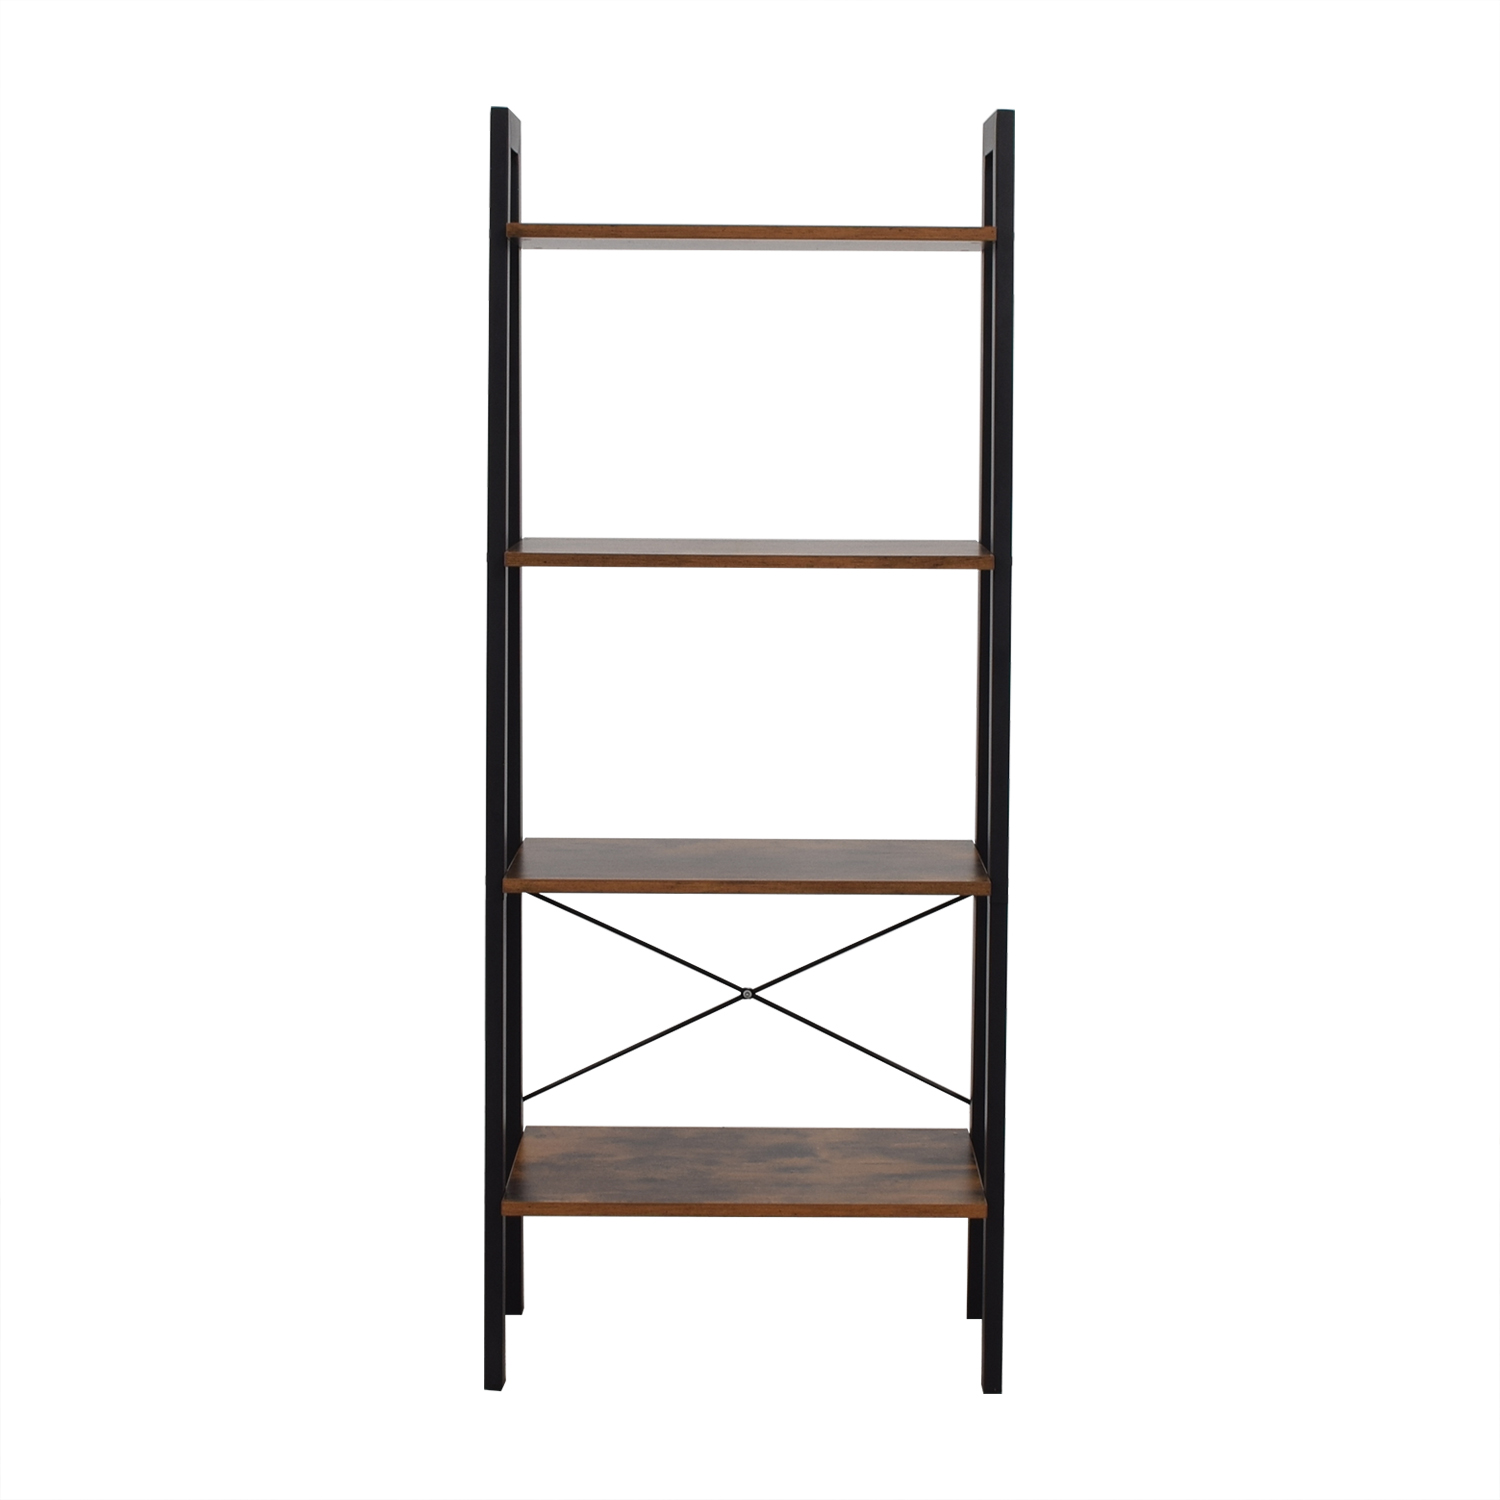 Ameziel, Inc. Ameziel Vintage Ladder Shelf for sale